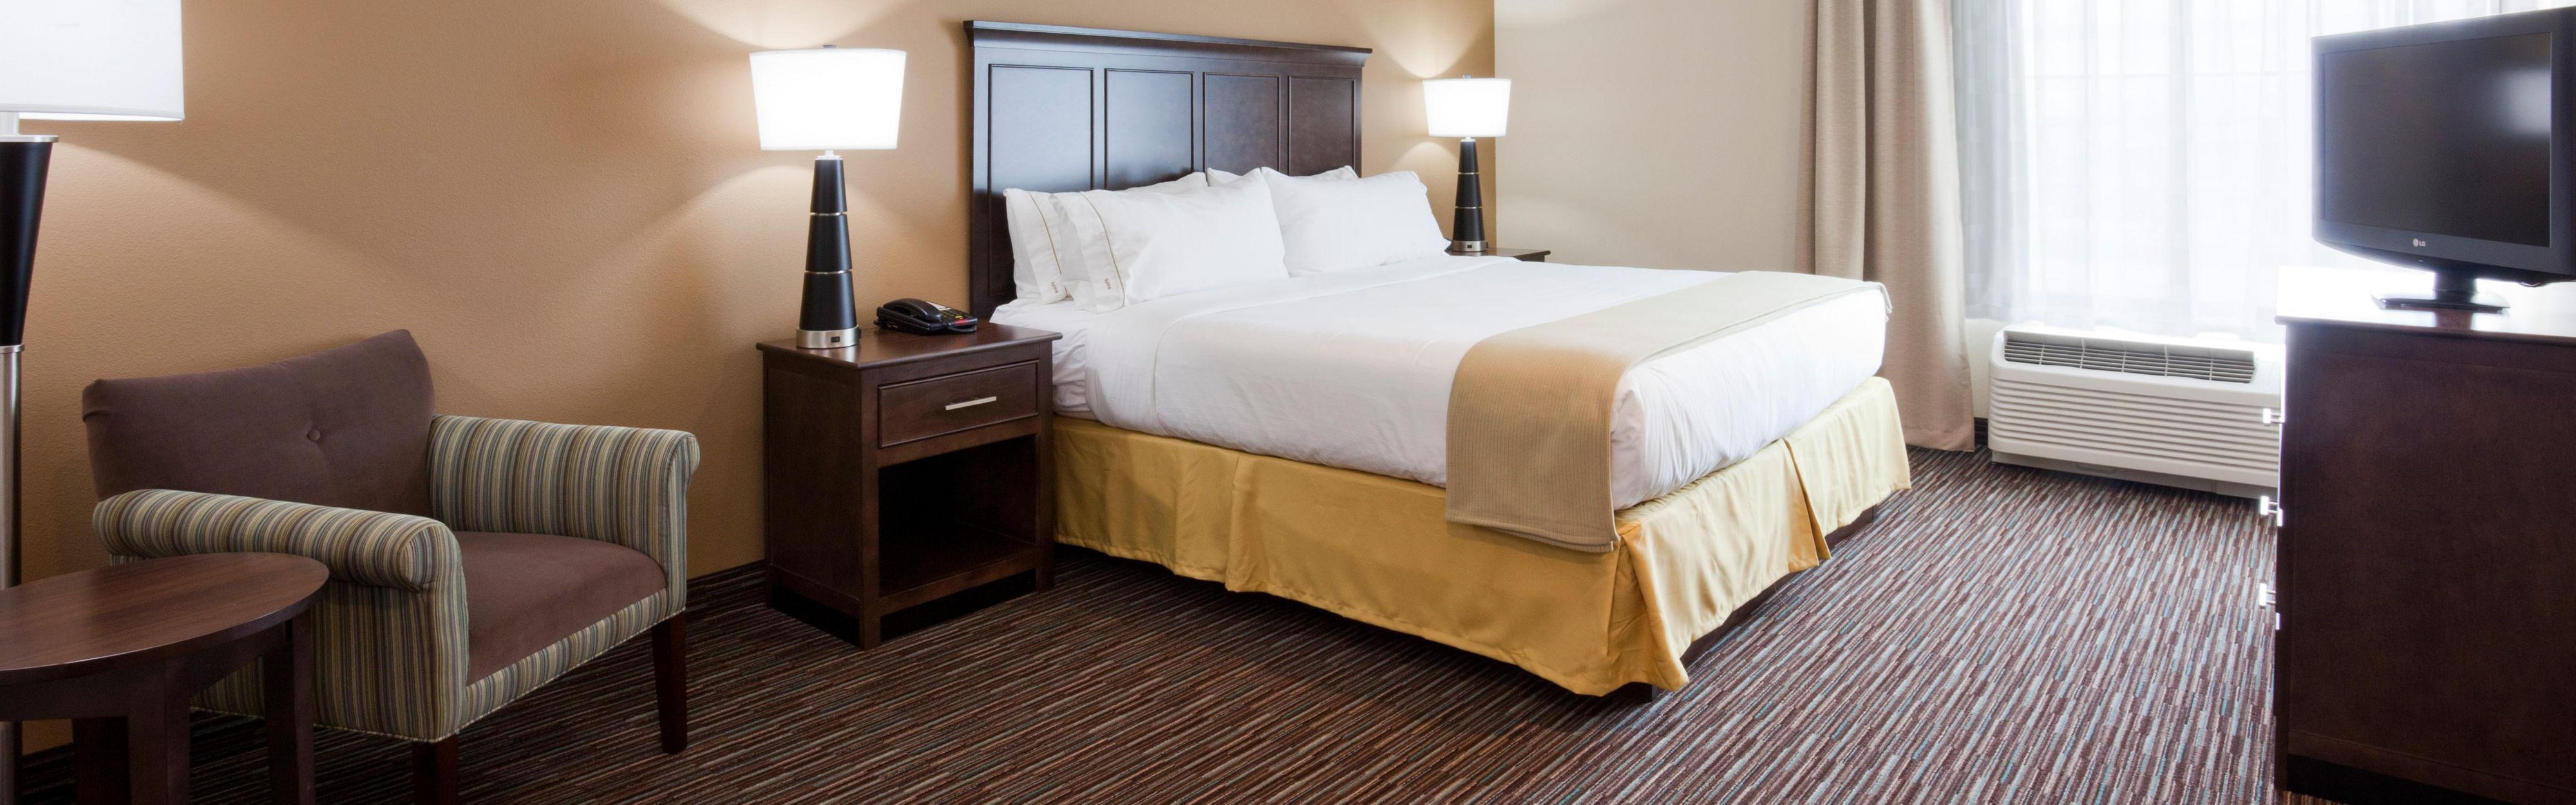 Holiday Inn Express & Suites Willmar image 1